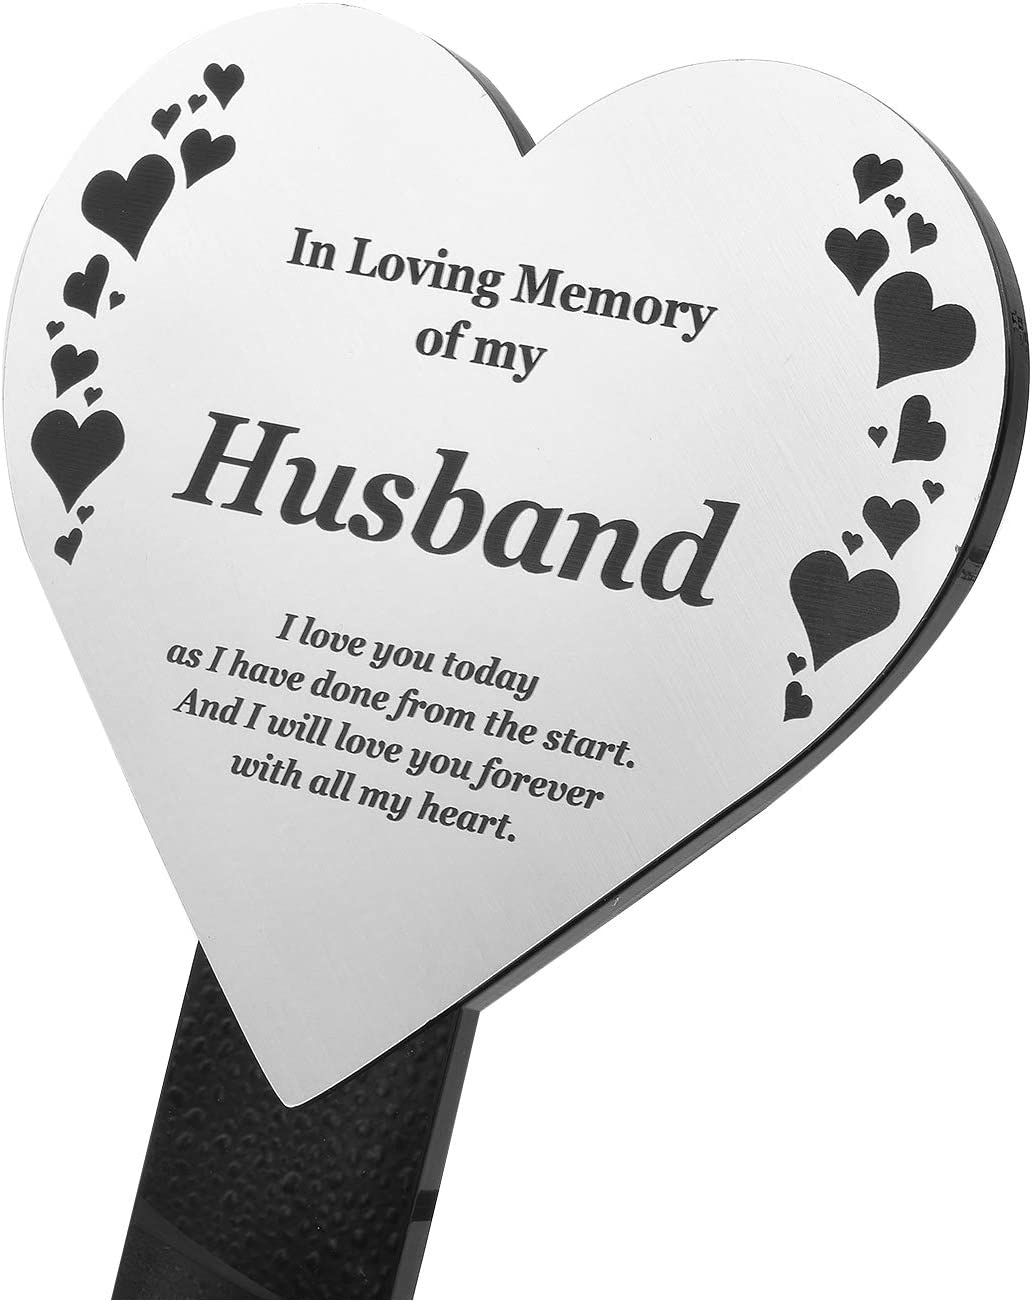 Husband Memorial Remembrance Plaque Stake, Hearts Design - Gold/Silver/Copper, Waterproof, Outdoor, Grave Marker, Tribute, Plant Marker (Silver)